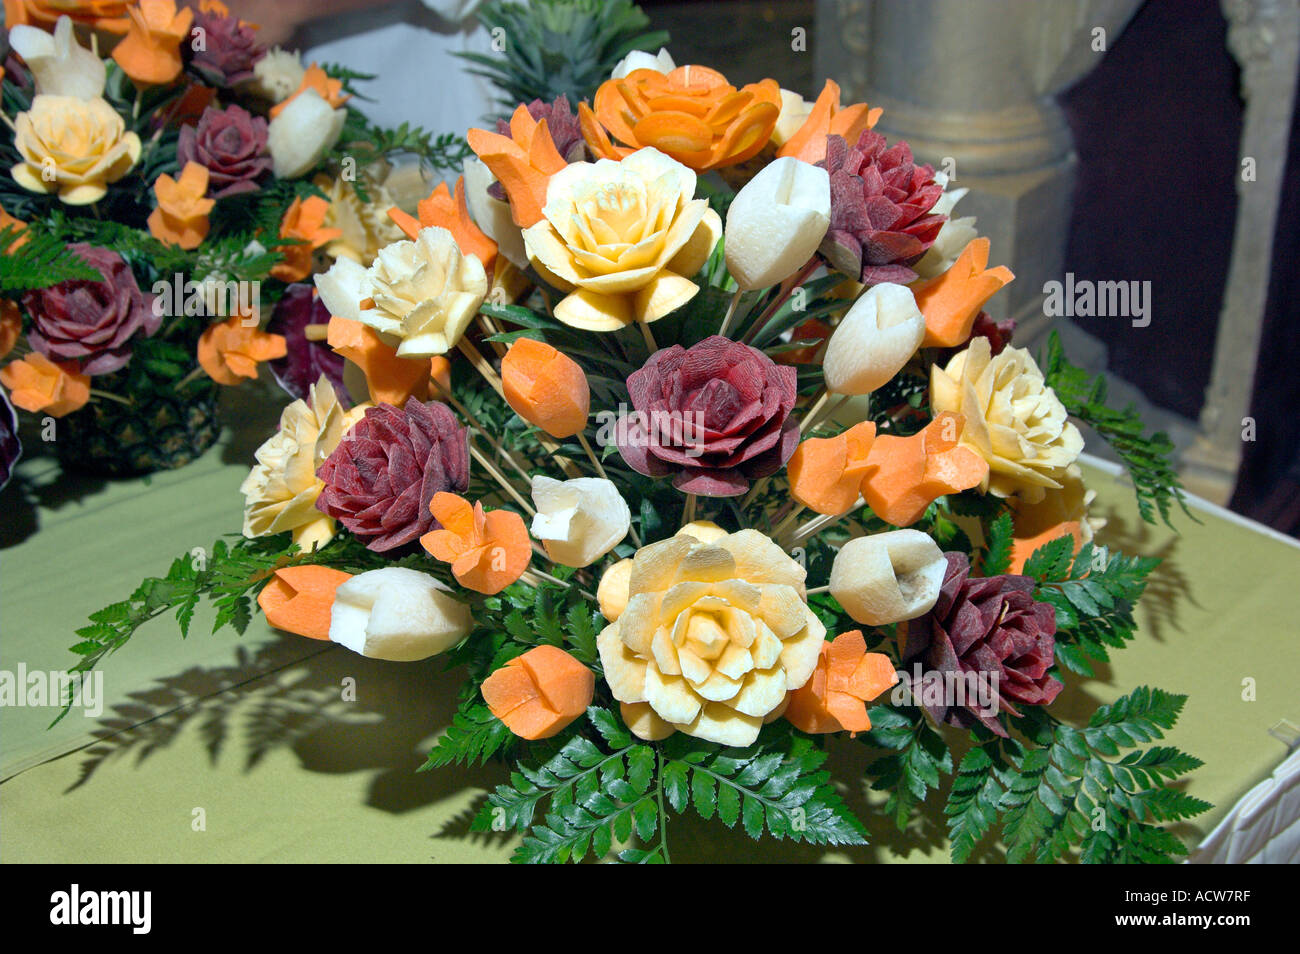 Closeup view of an arrangement flowers carved from